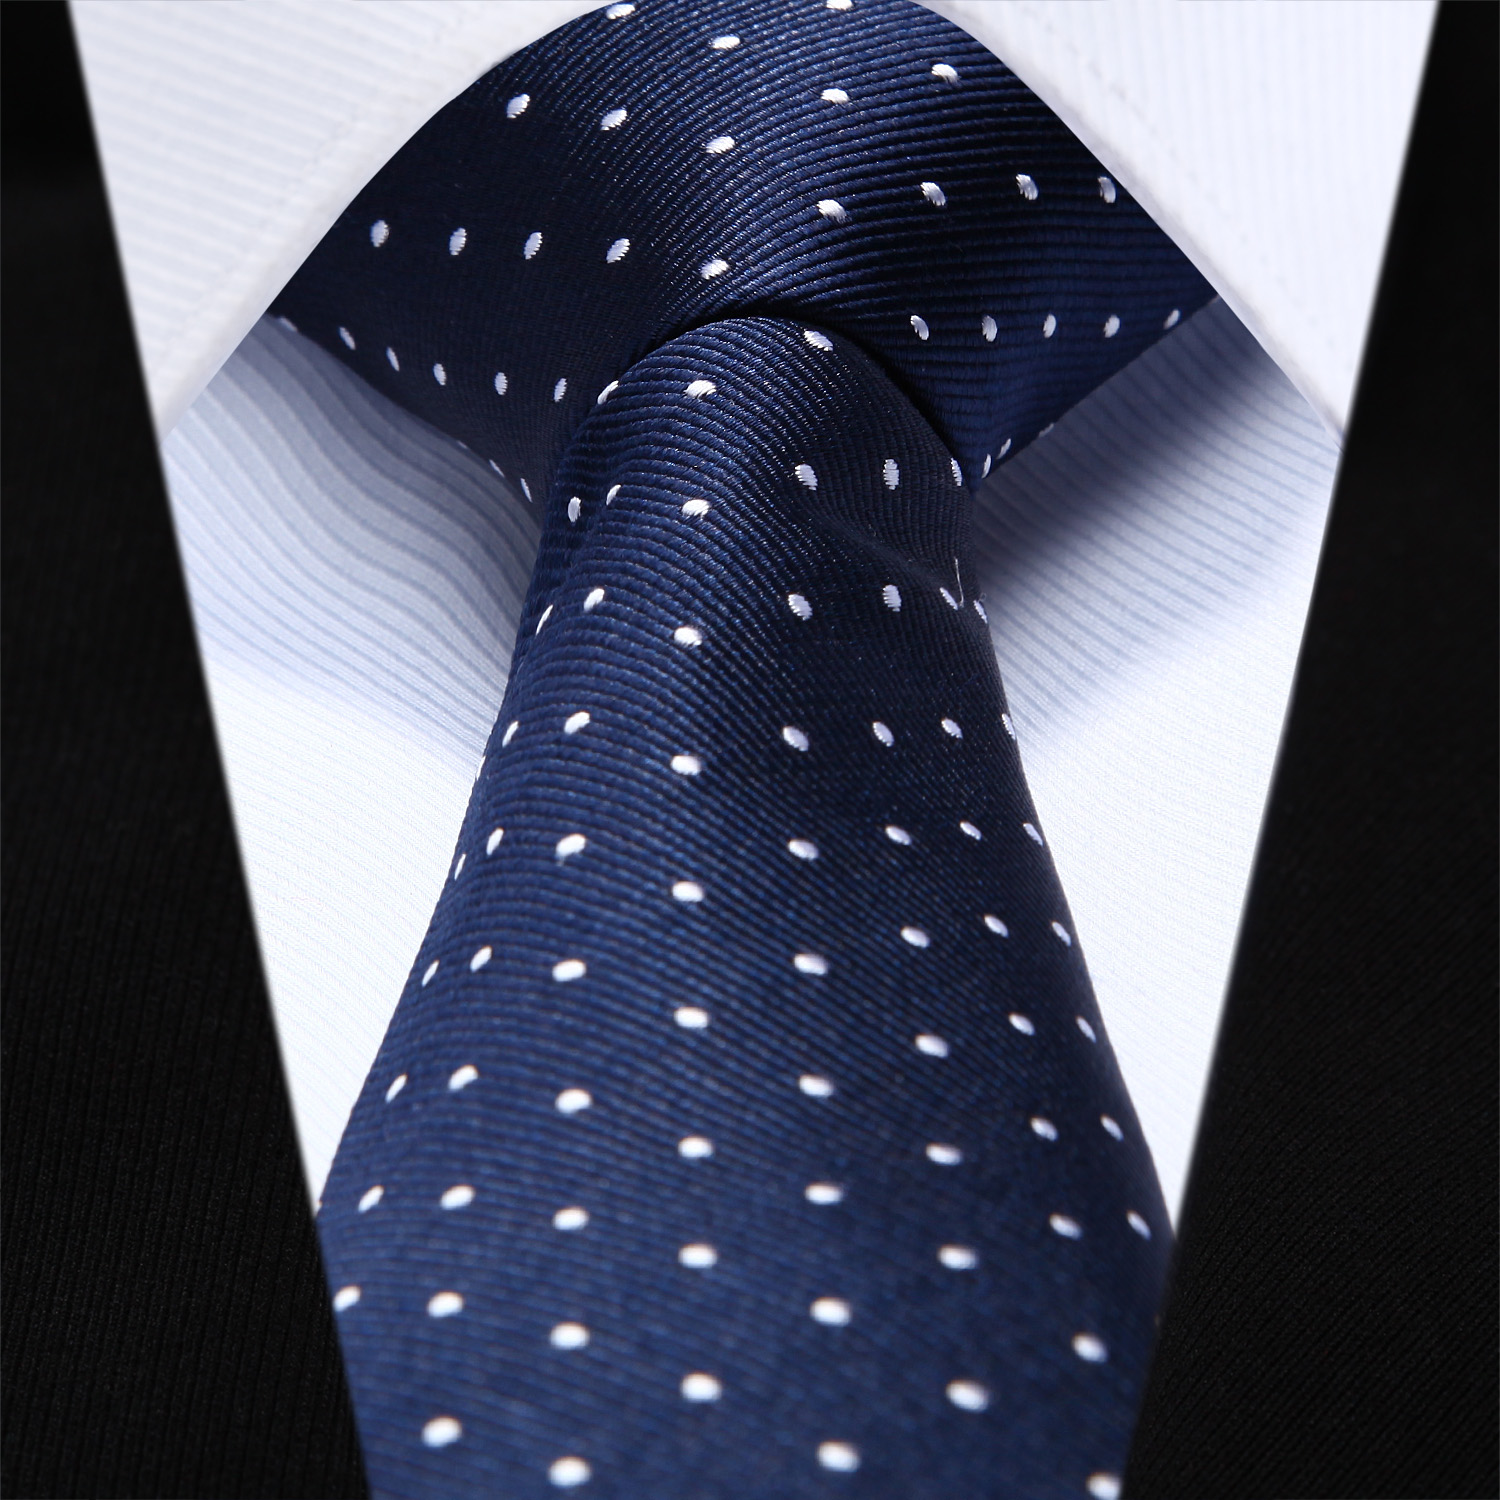 "Party Wedding Tie TZD02V6 Navy Blue White Dot Slim Narrow 2.6"" 100% Natural Silk Men Tie Necktie"